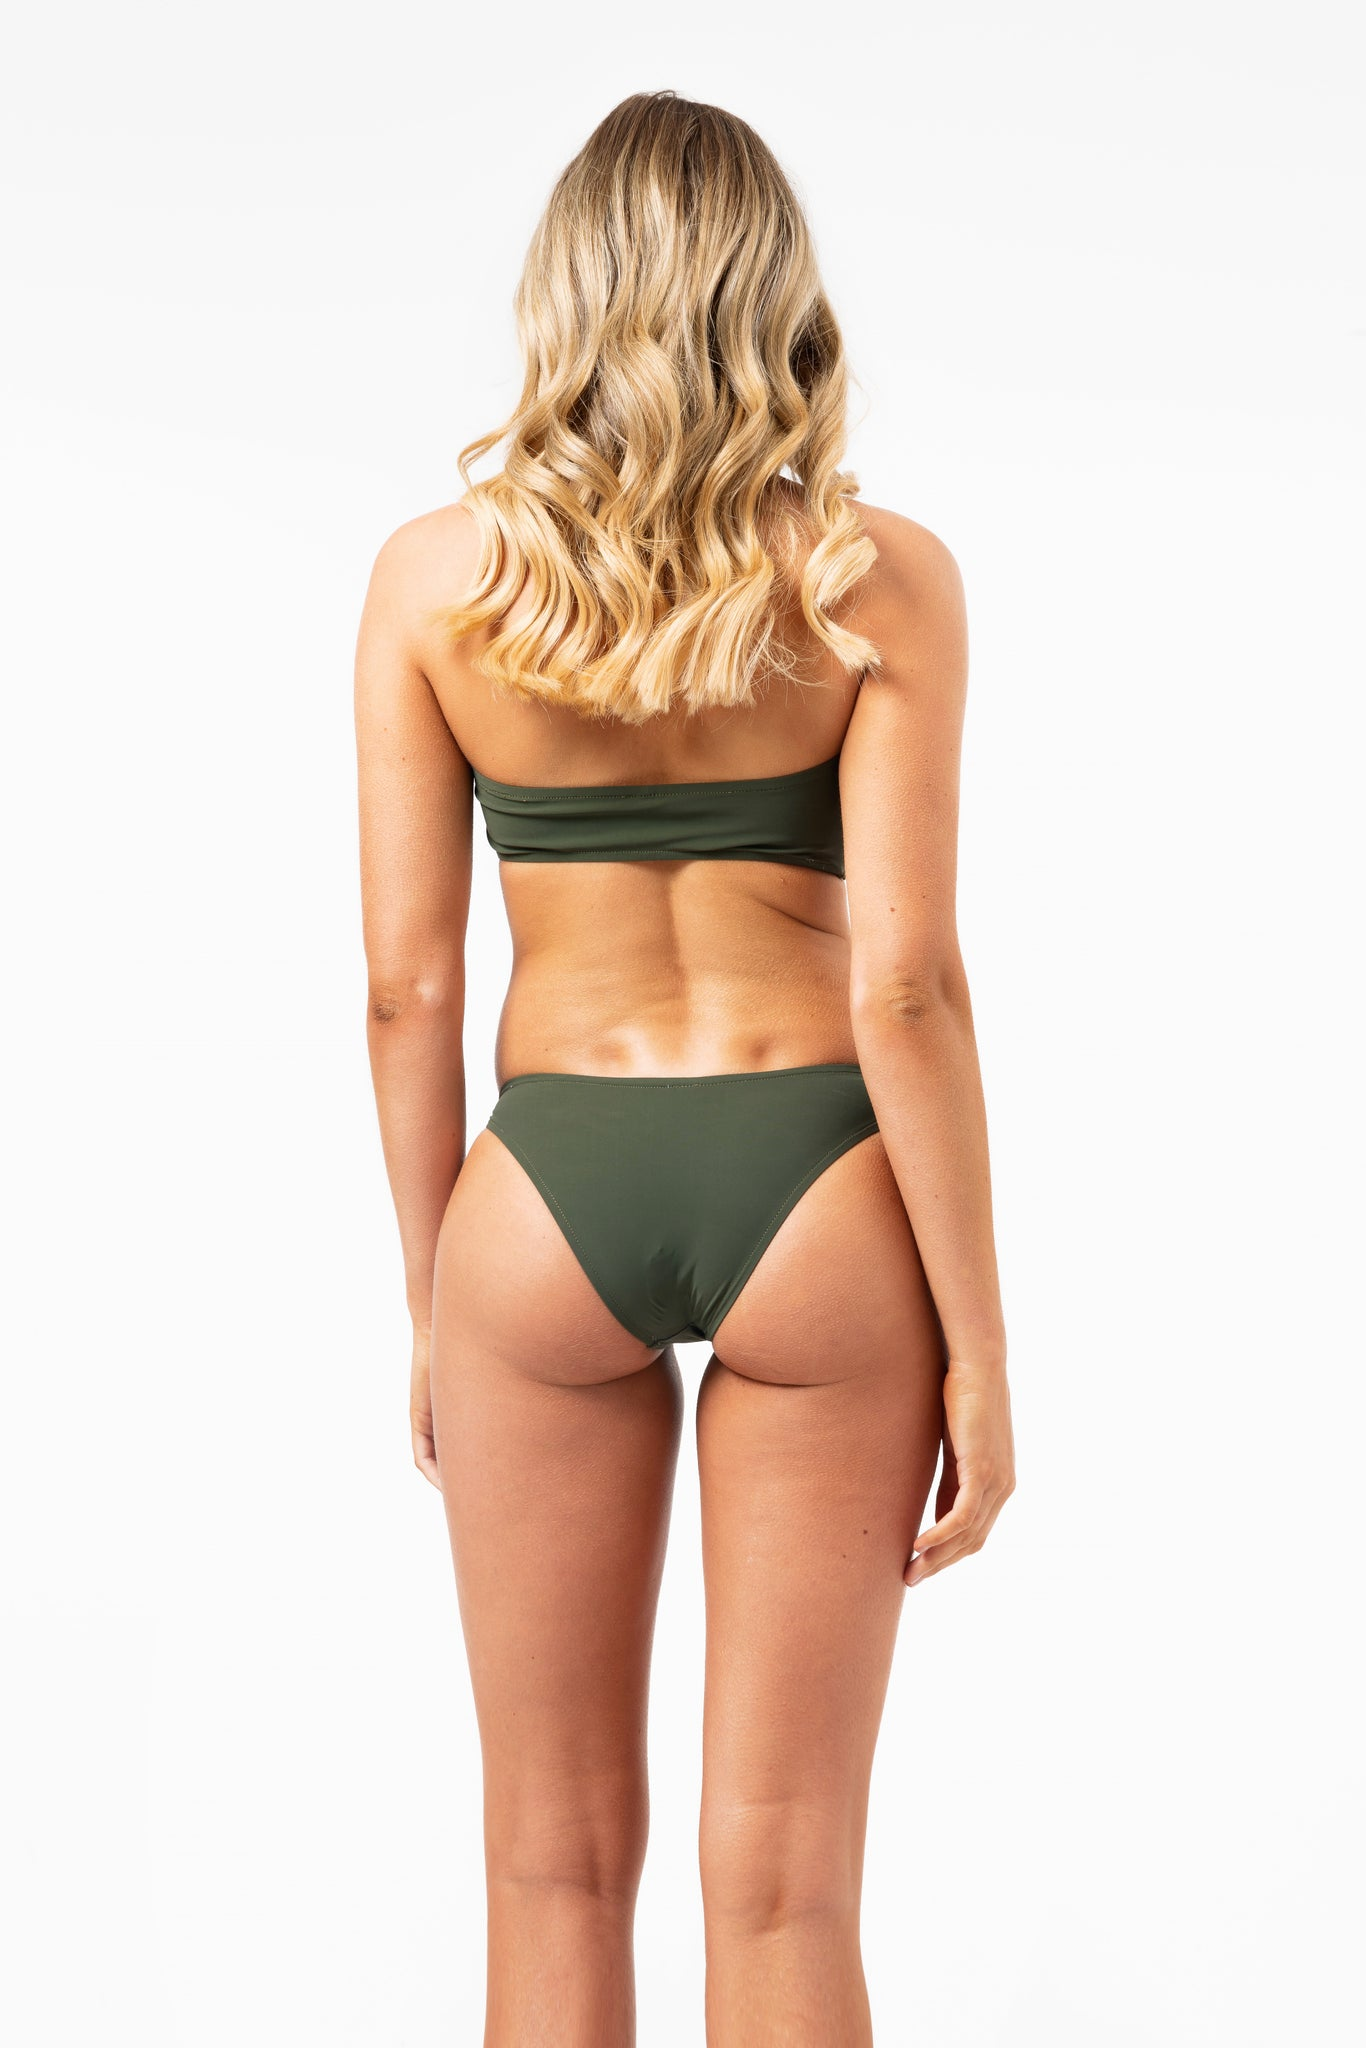 ALL THE FEELS: Skimp Bikini Bottoms in Khaki - GERRY CAN